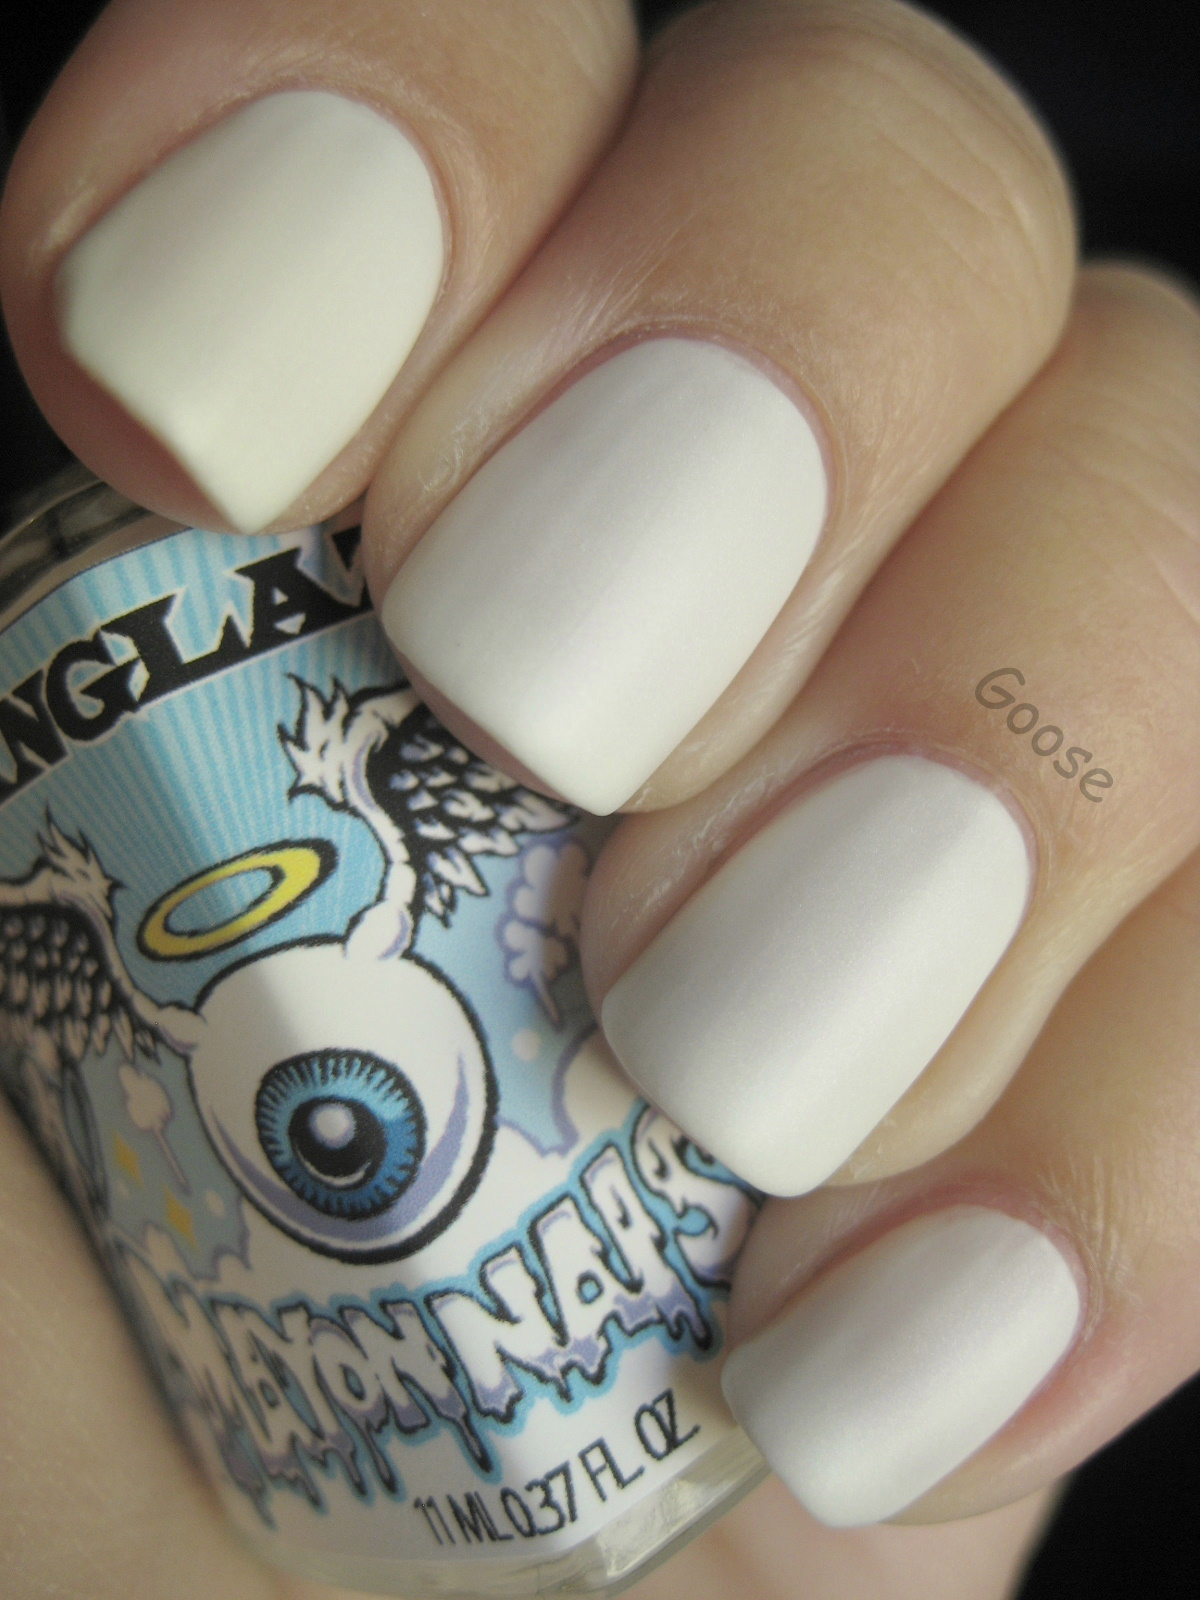 Goose\'s Glitter: Some Manglaze Swatches and Review